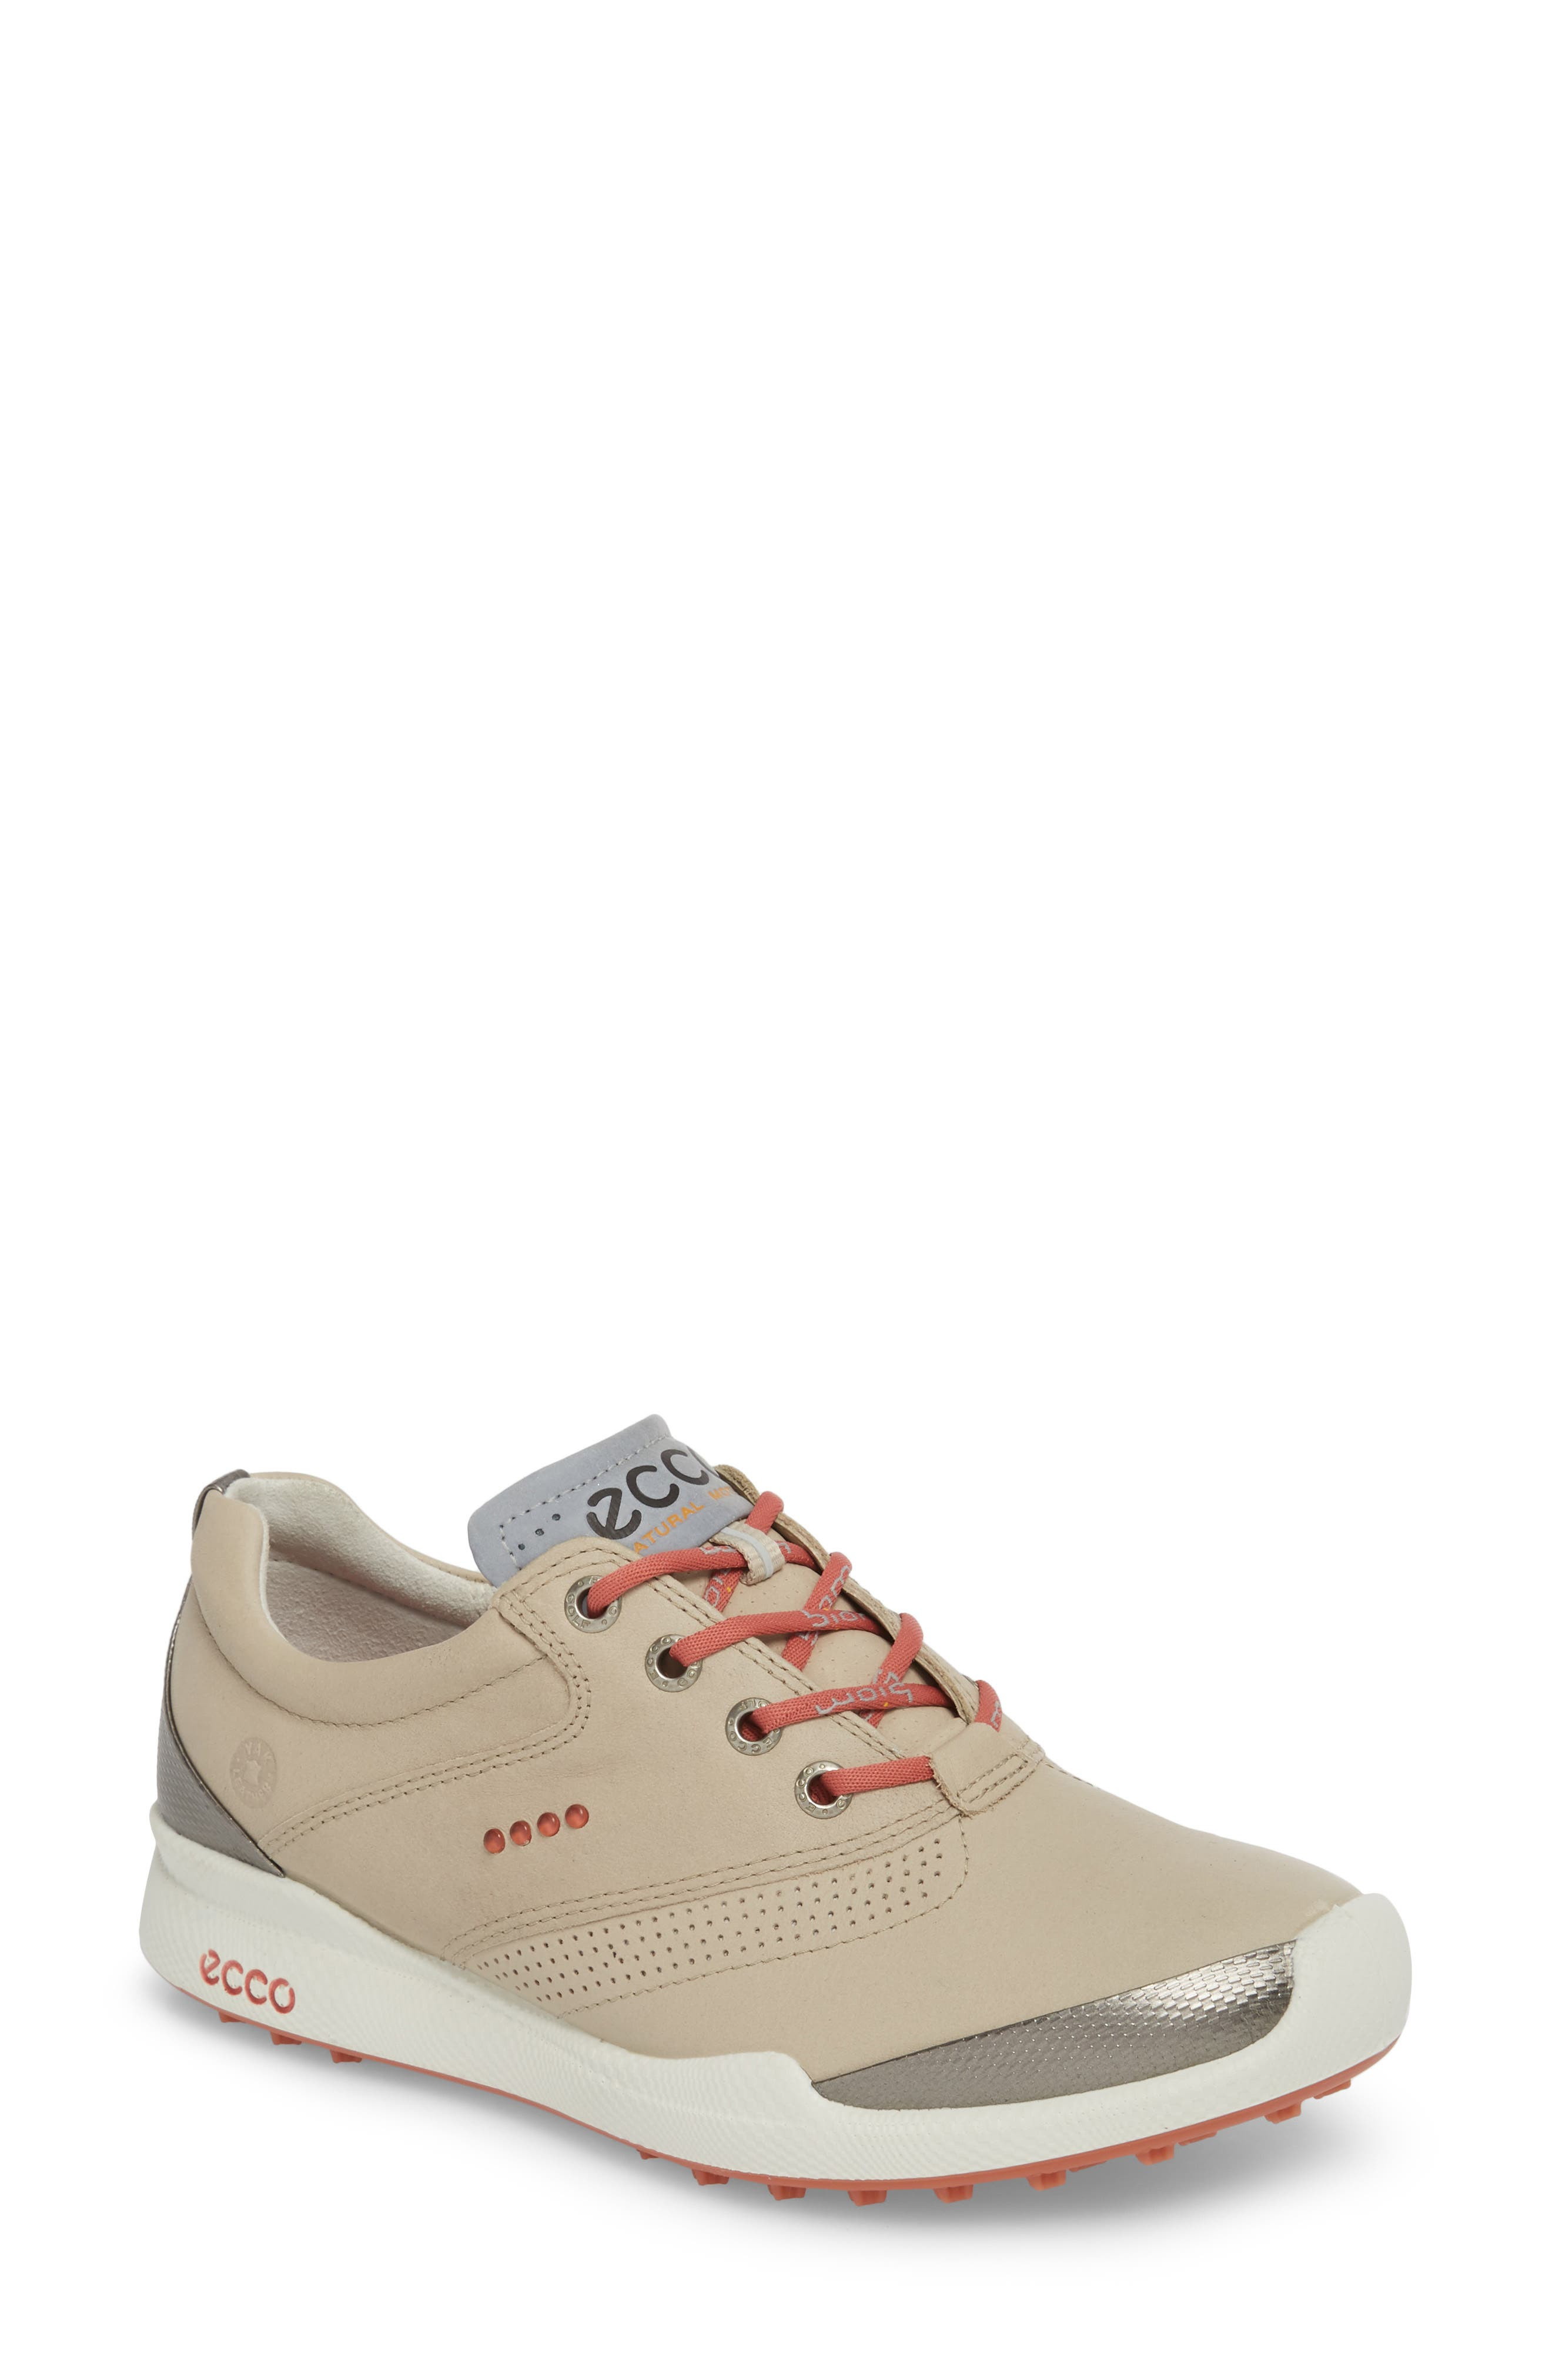 Biom Hybrid Golf Shoe,                             Main thumbnail 1, color,                             Oyster Leather